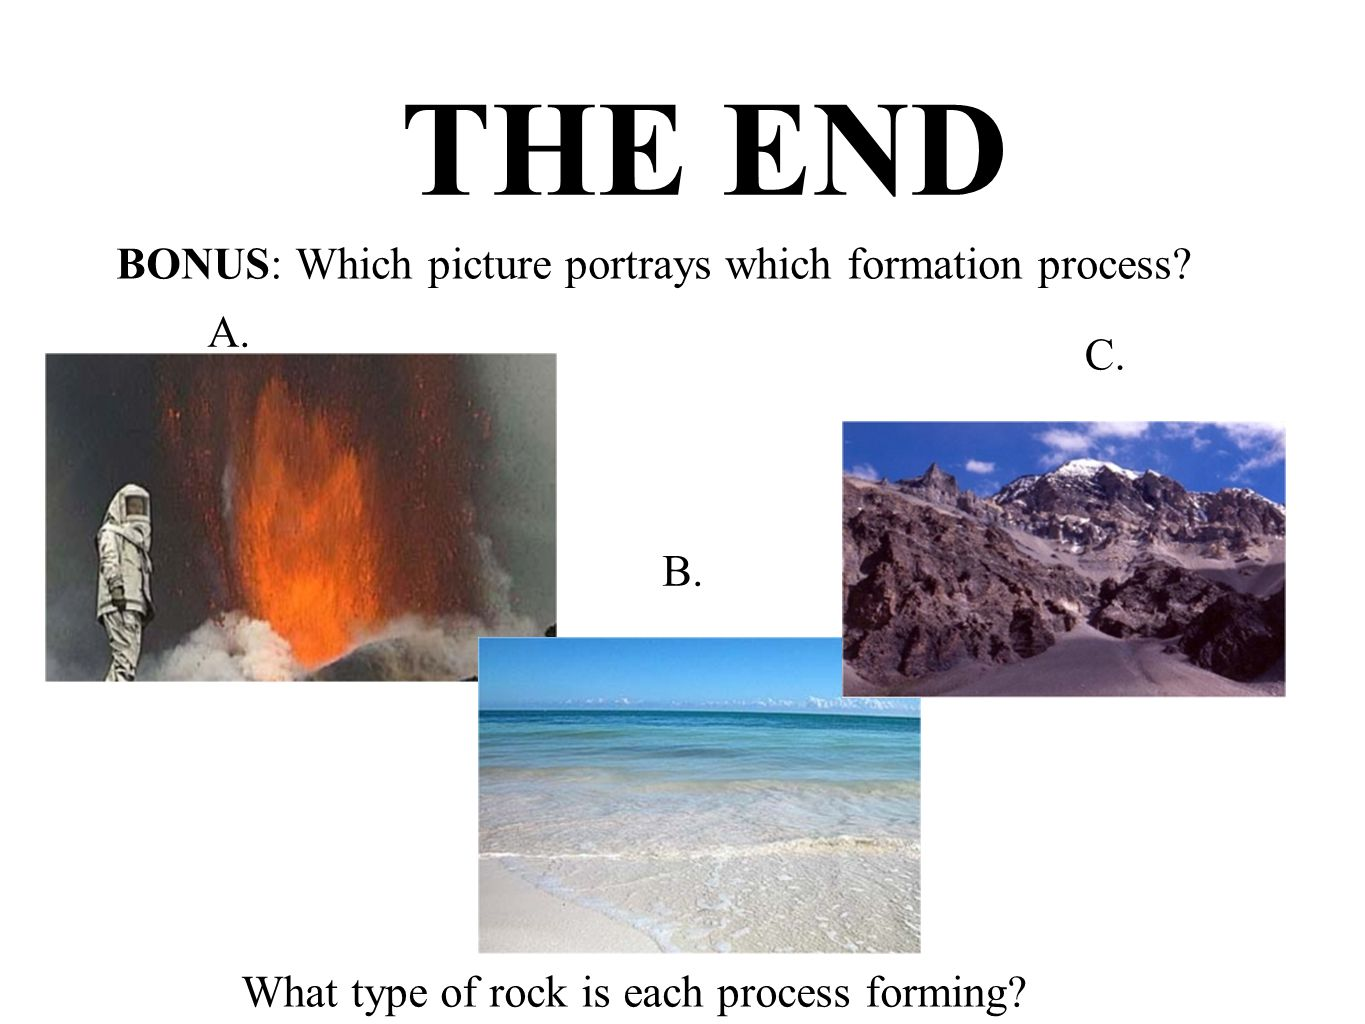 THE END BONUS: Which picture portrays which formation process? A. B. C. What type of rock is each process forming?